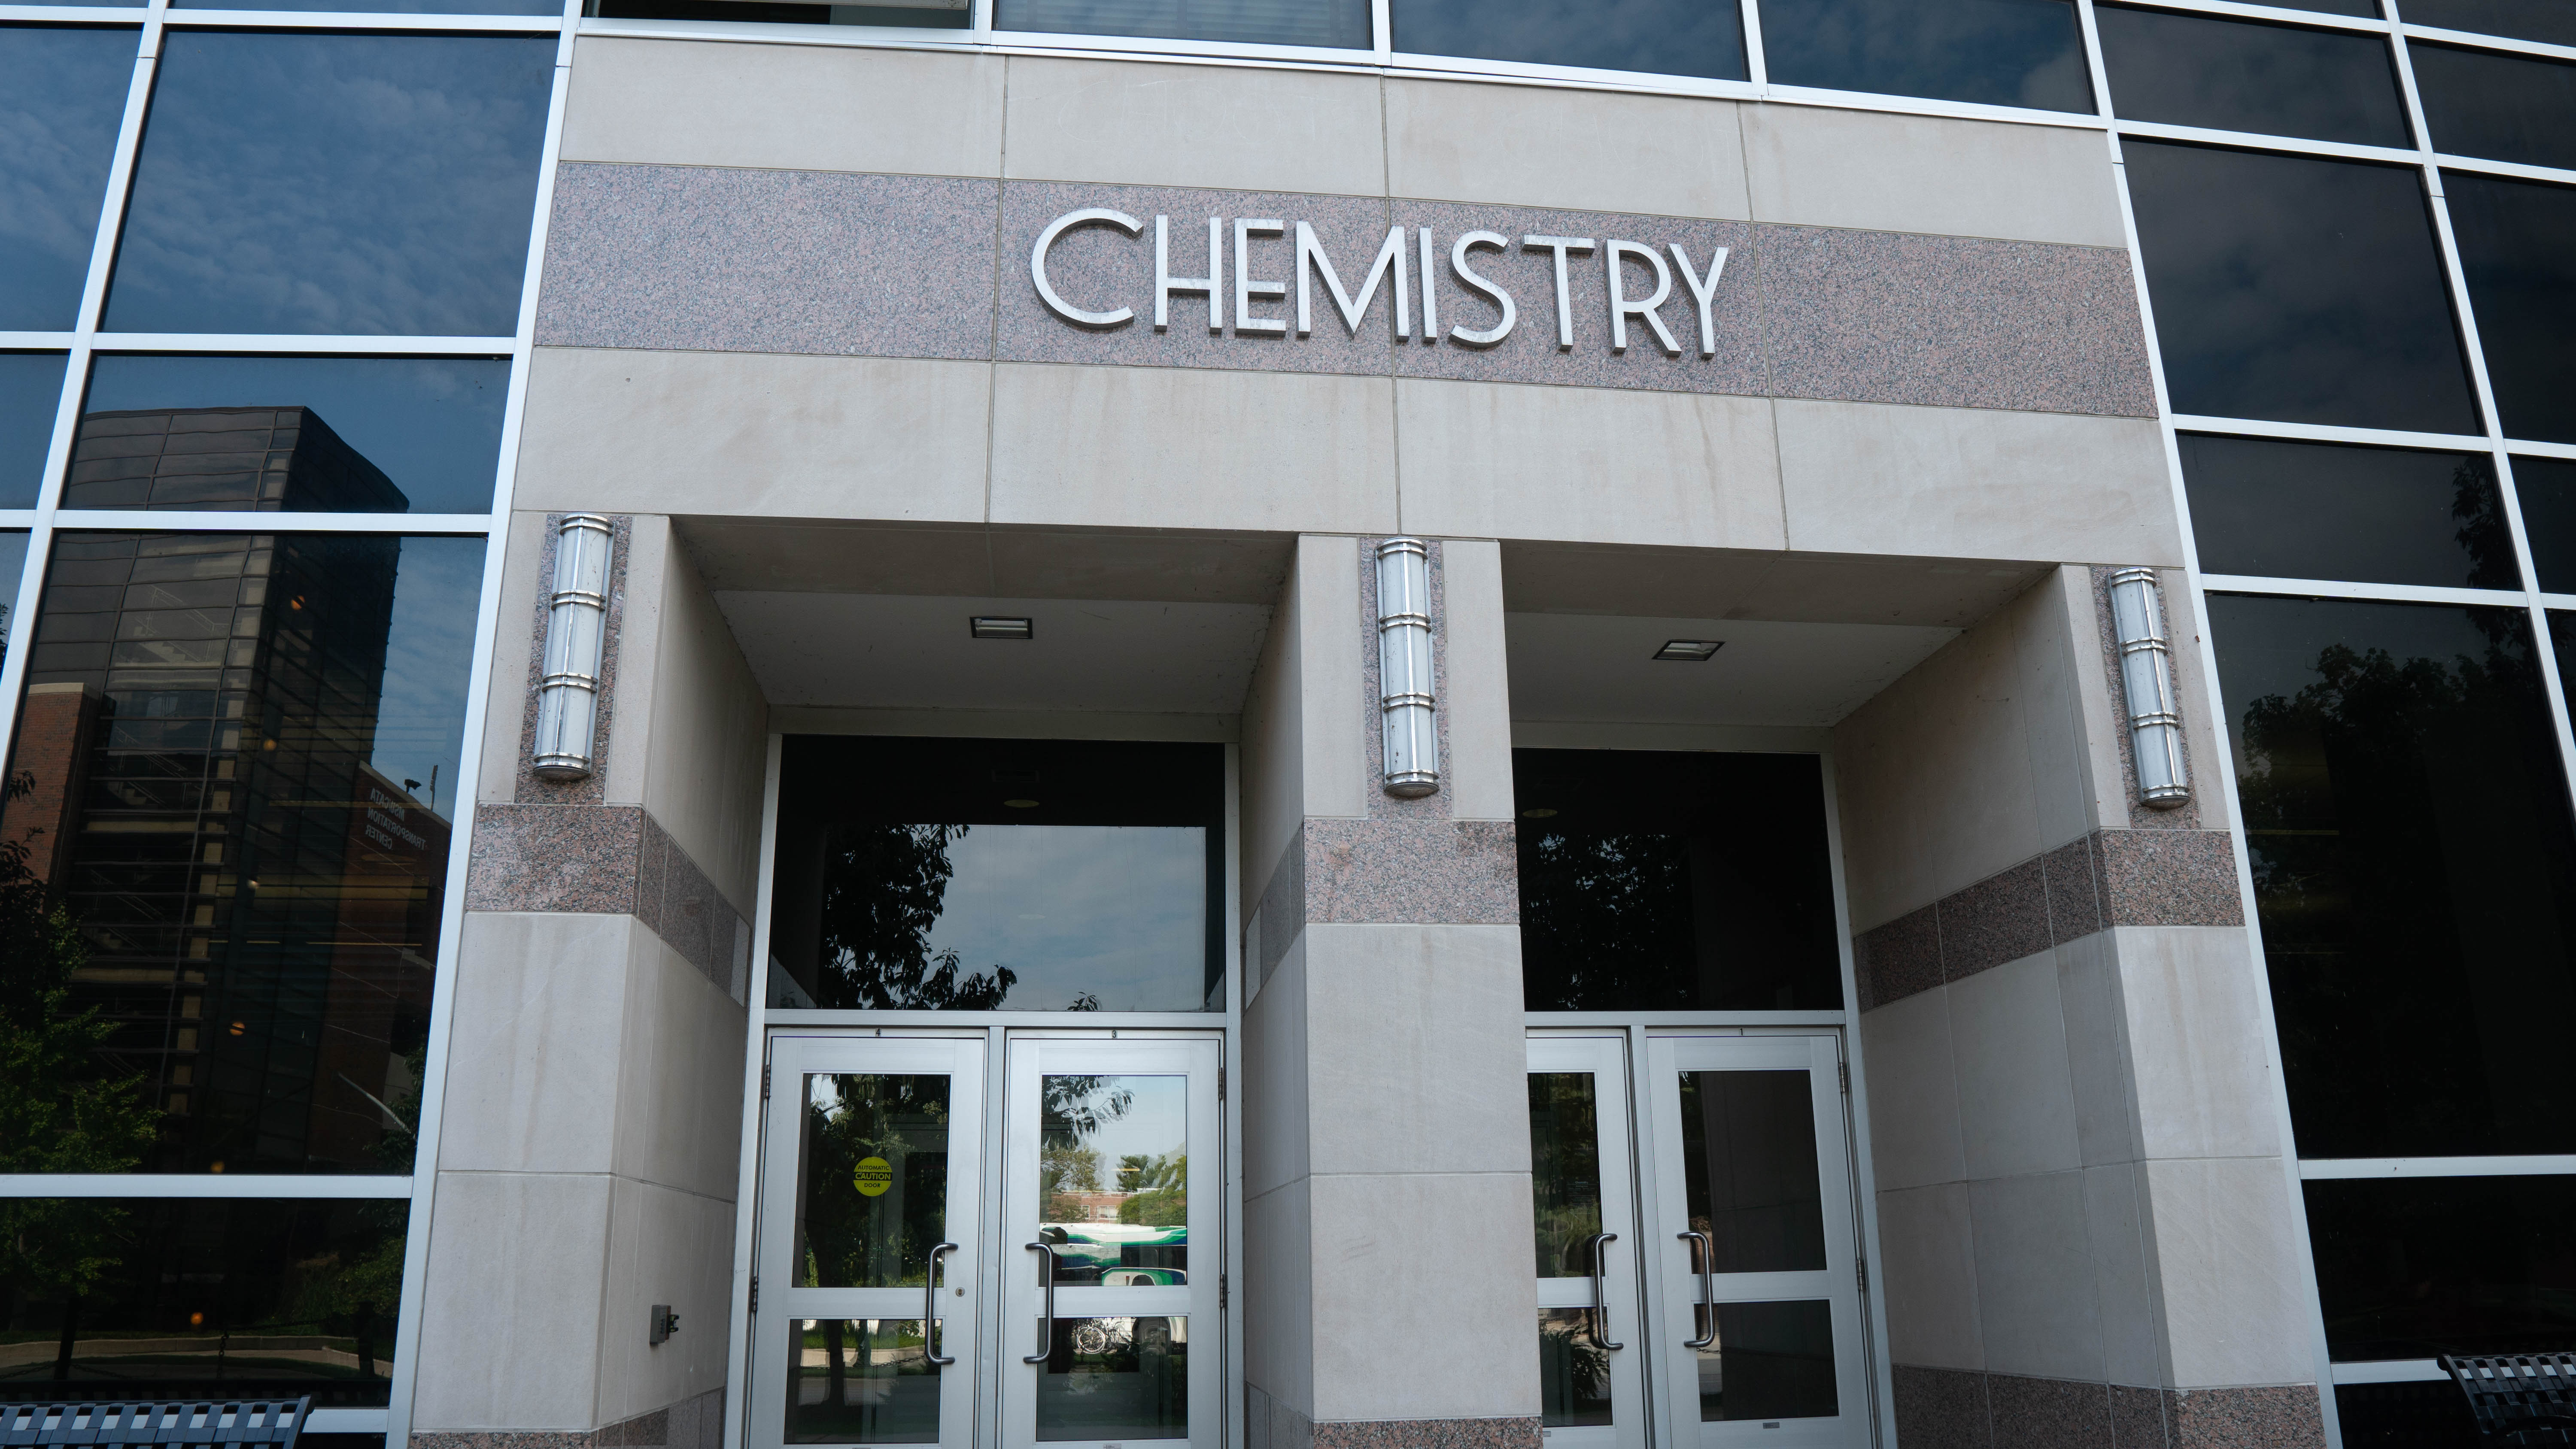 Image of MSU Chemistry Building